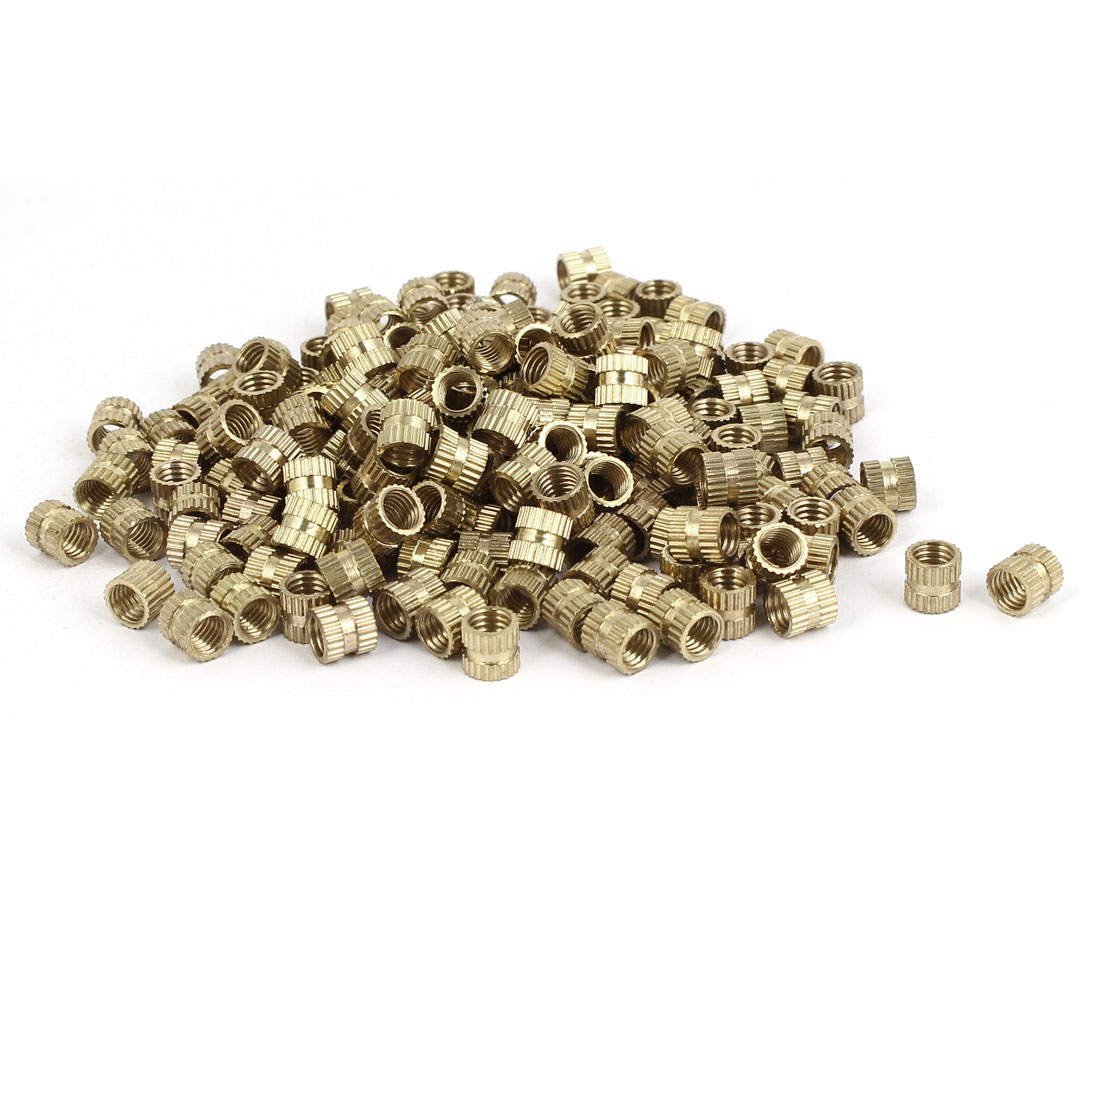 M5 x6mm Female Thread Brass Knurled Threaded Round Insert Embedded Nuts 100PCS